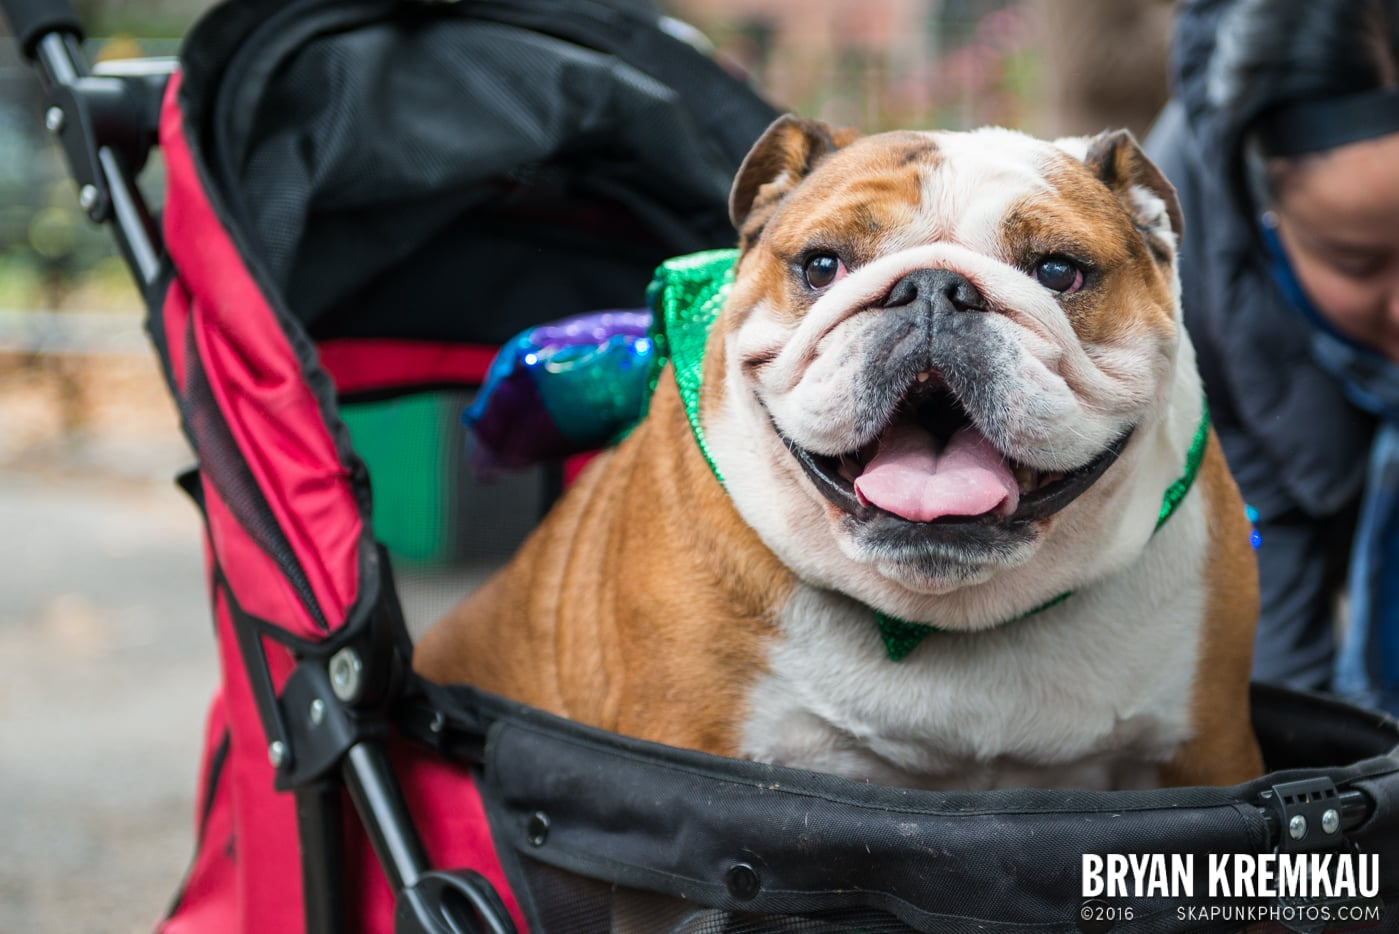 Tompkins Square Halloween Dog Parade 2015 @ Tompkins Square Park, NYC – 10.24.15 (37)